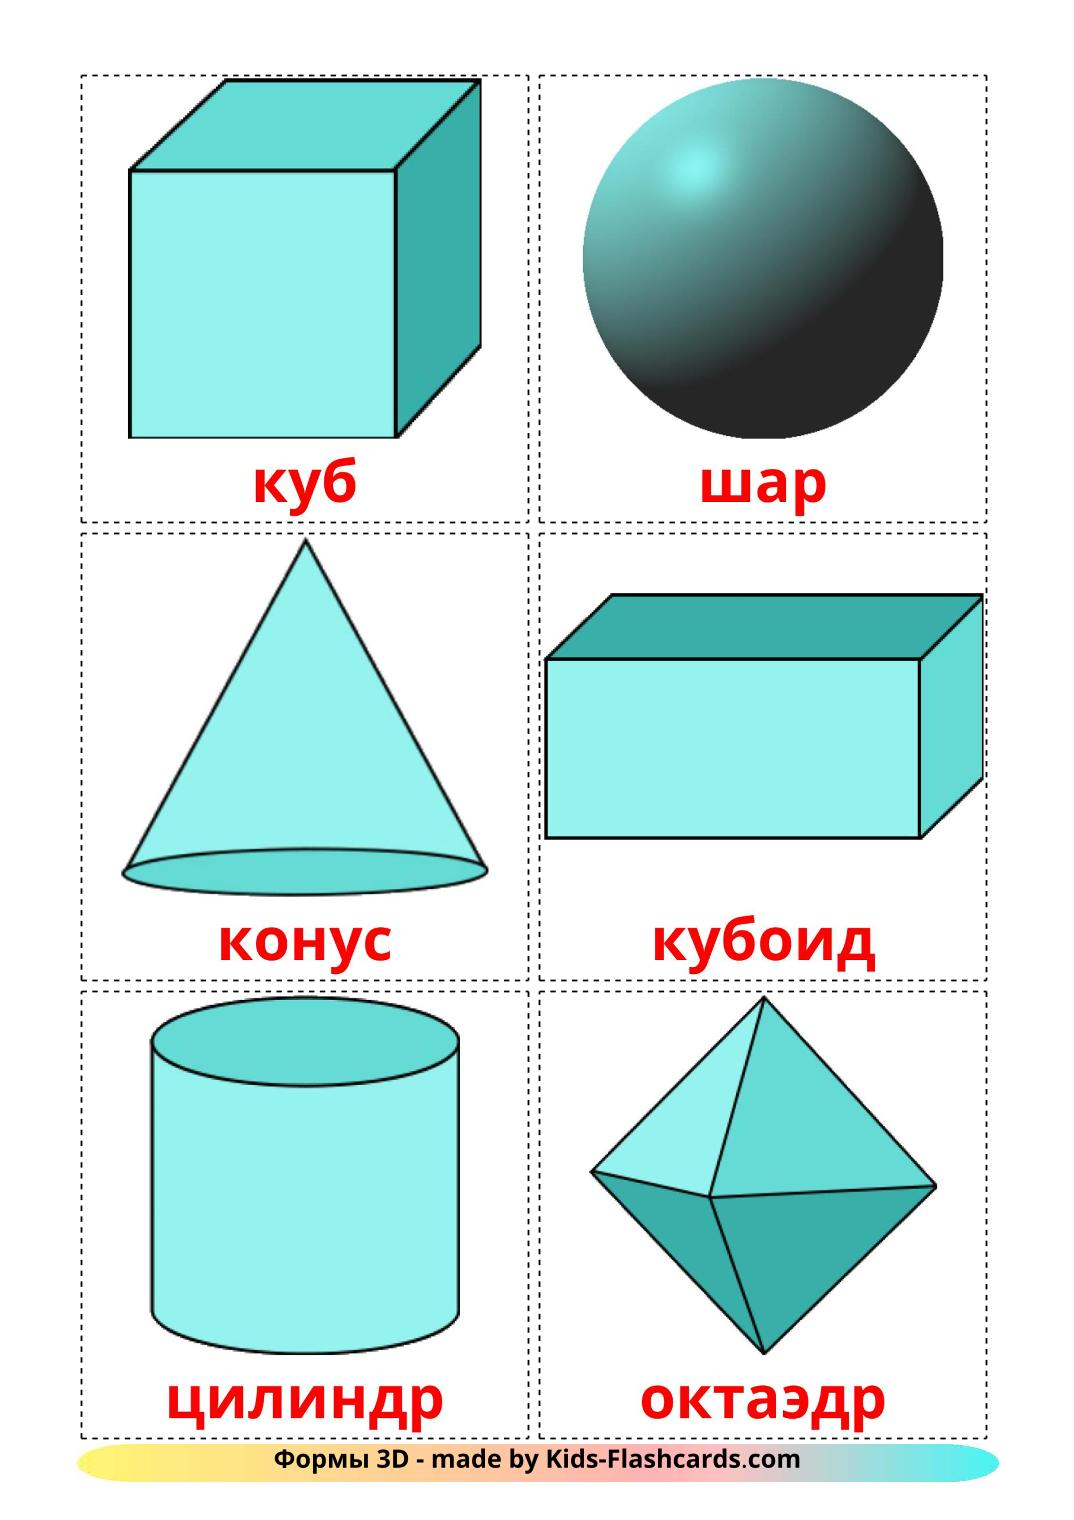 3D Shapes - 17 Free Printable russian Flashcards